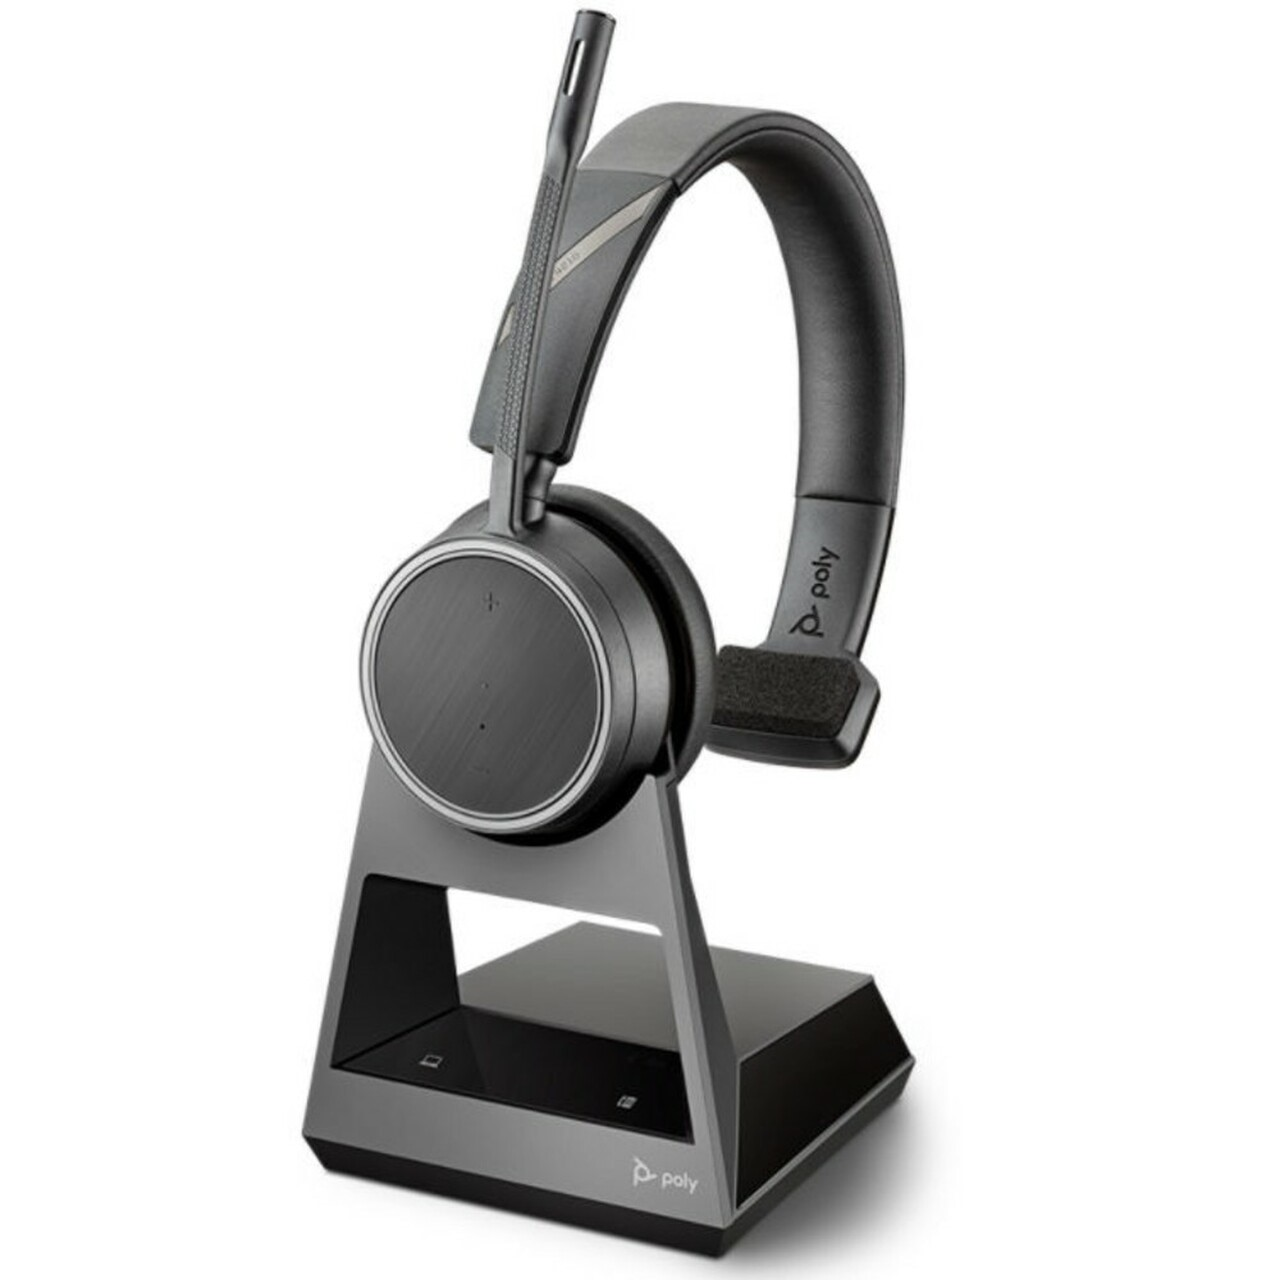 Poly Voyager 4210 Office STD USB